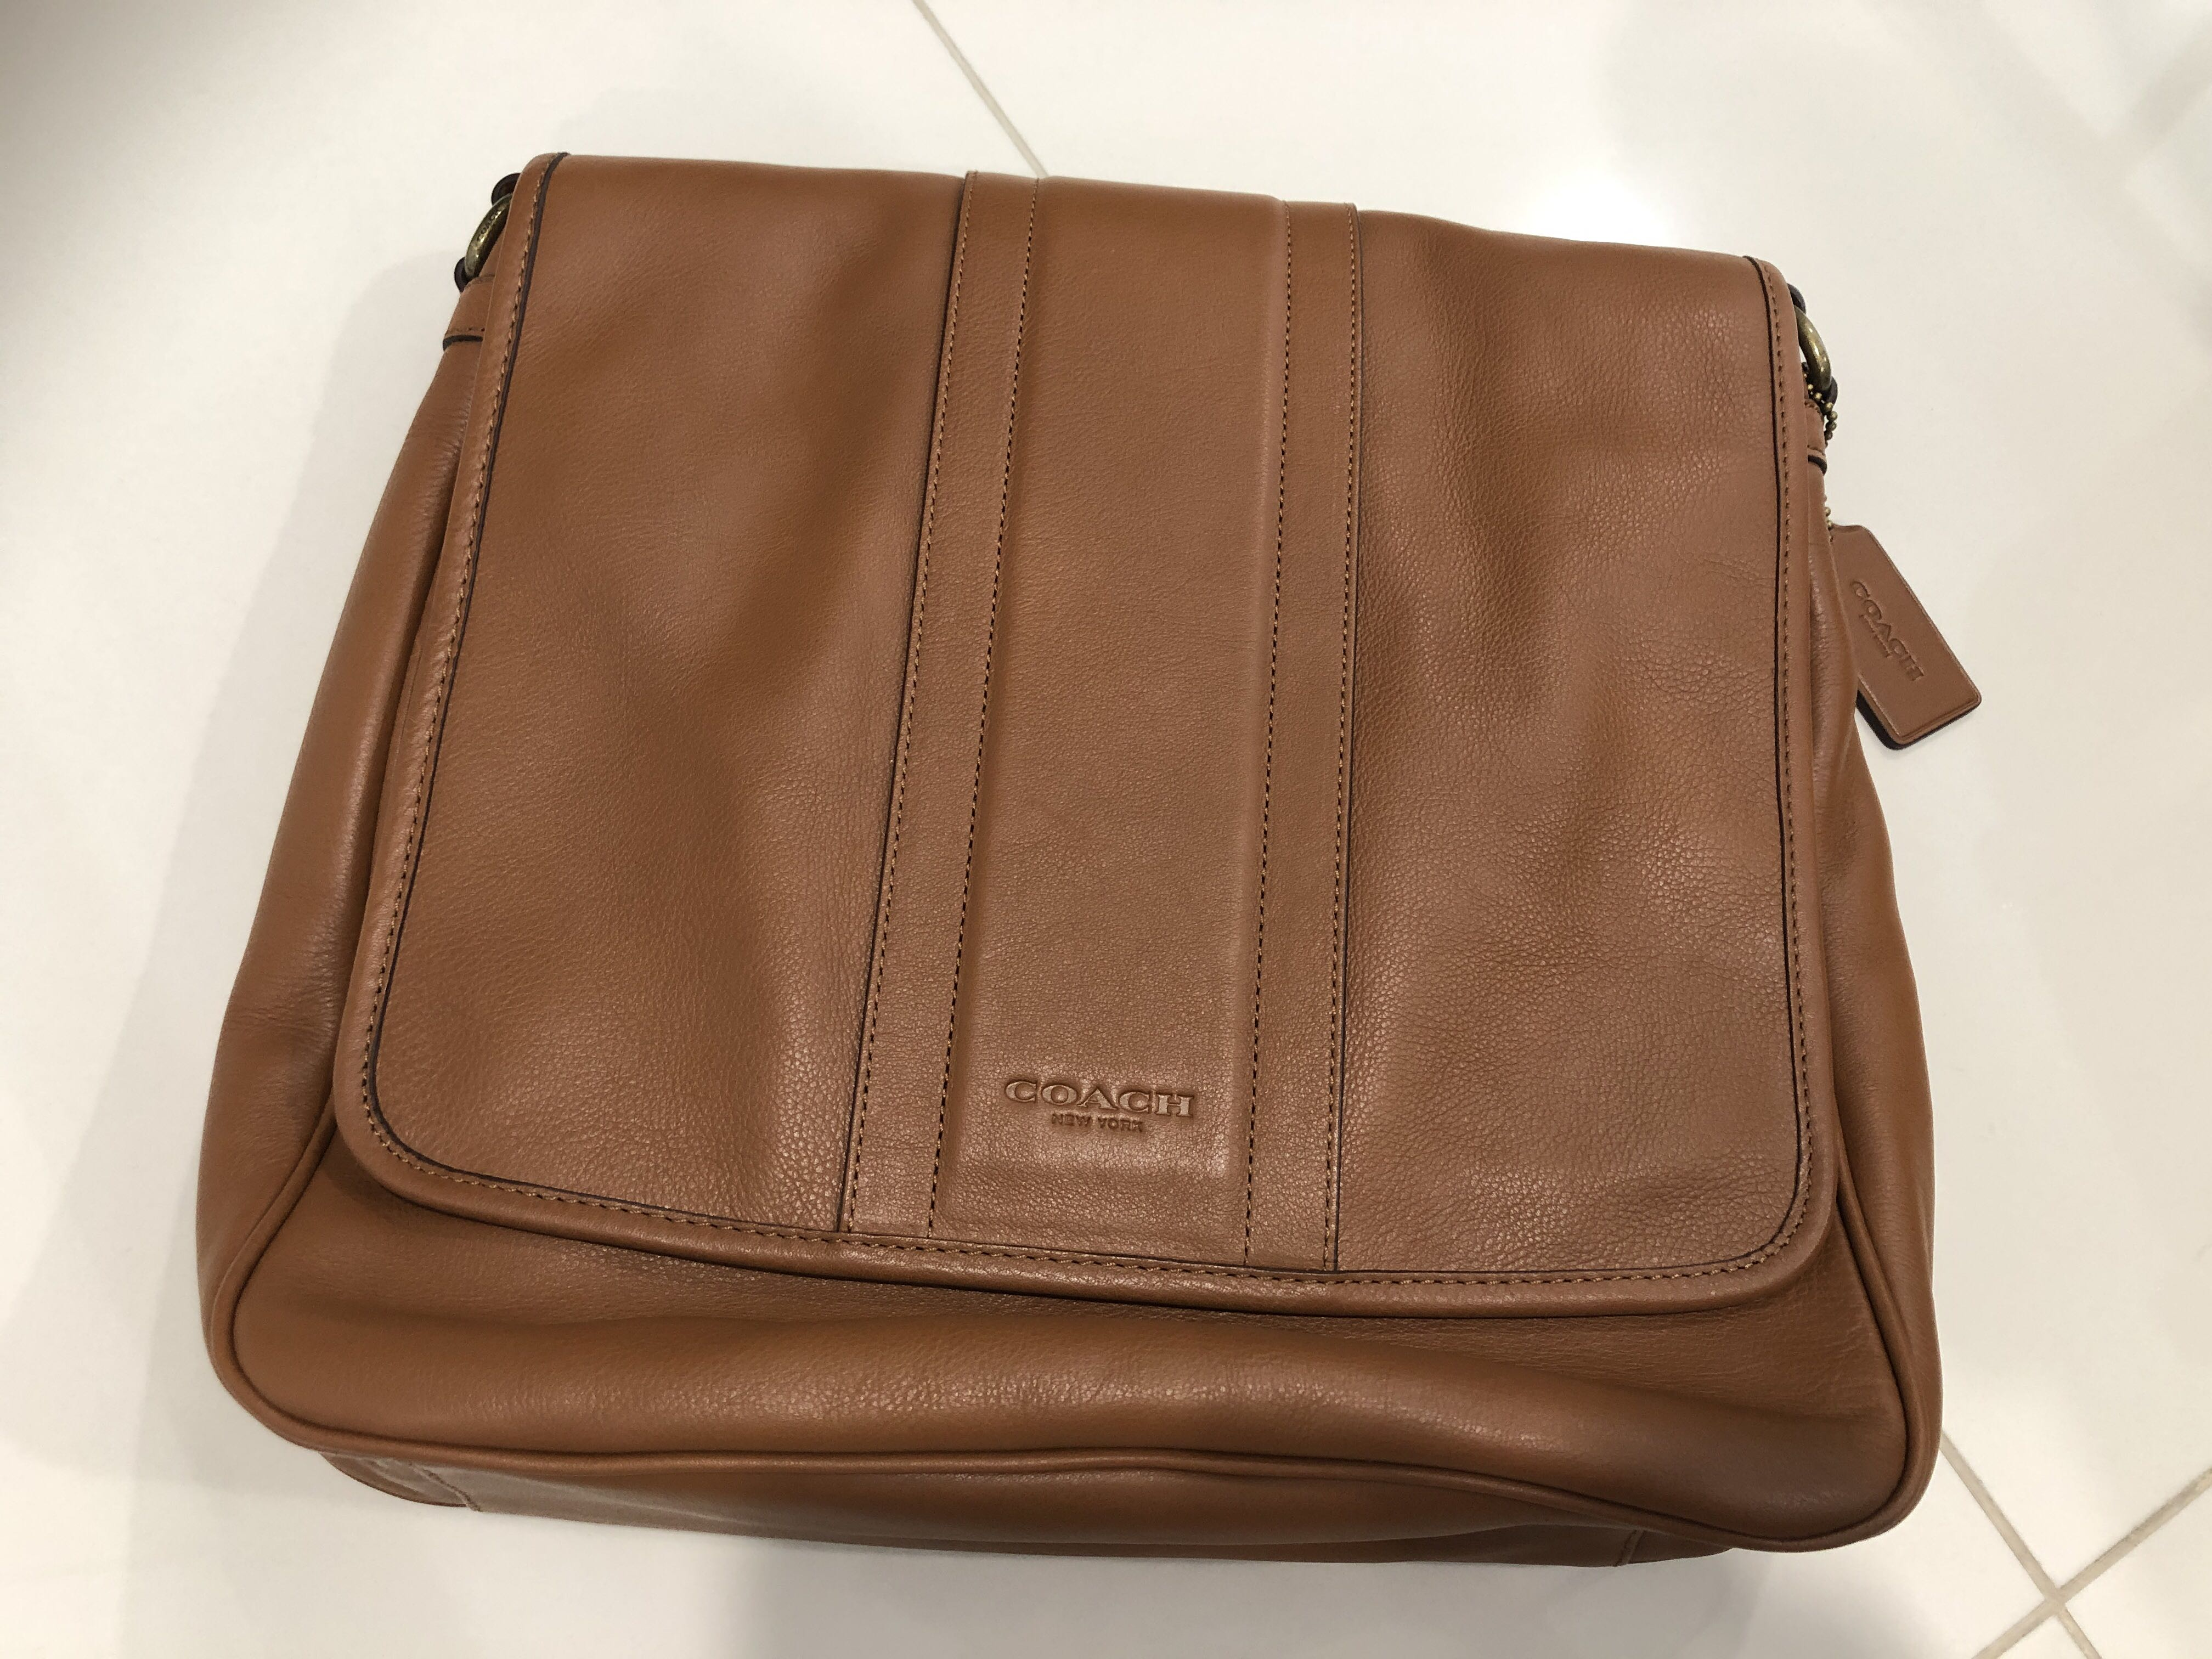 ... clearance new coach leather sling bag perfect fit luxury bags wallets  sling bags on carousell 73caa 9a65ed9c0fa60